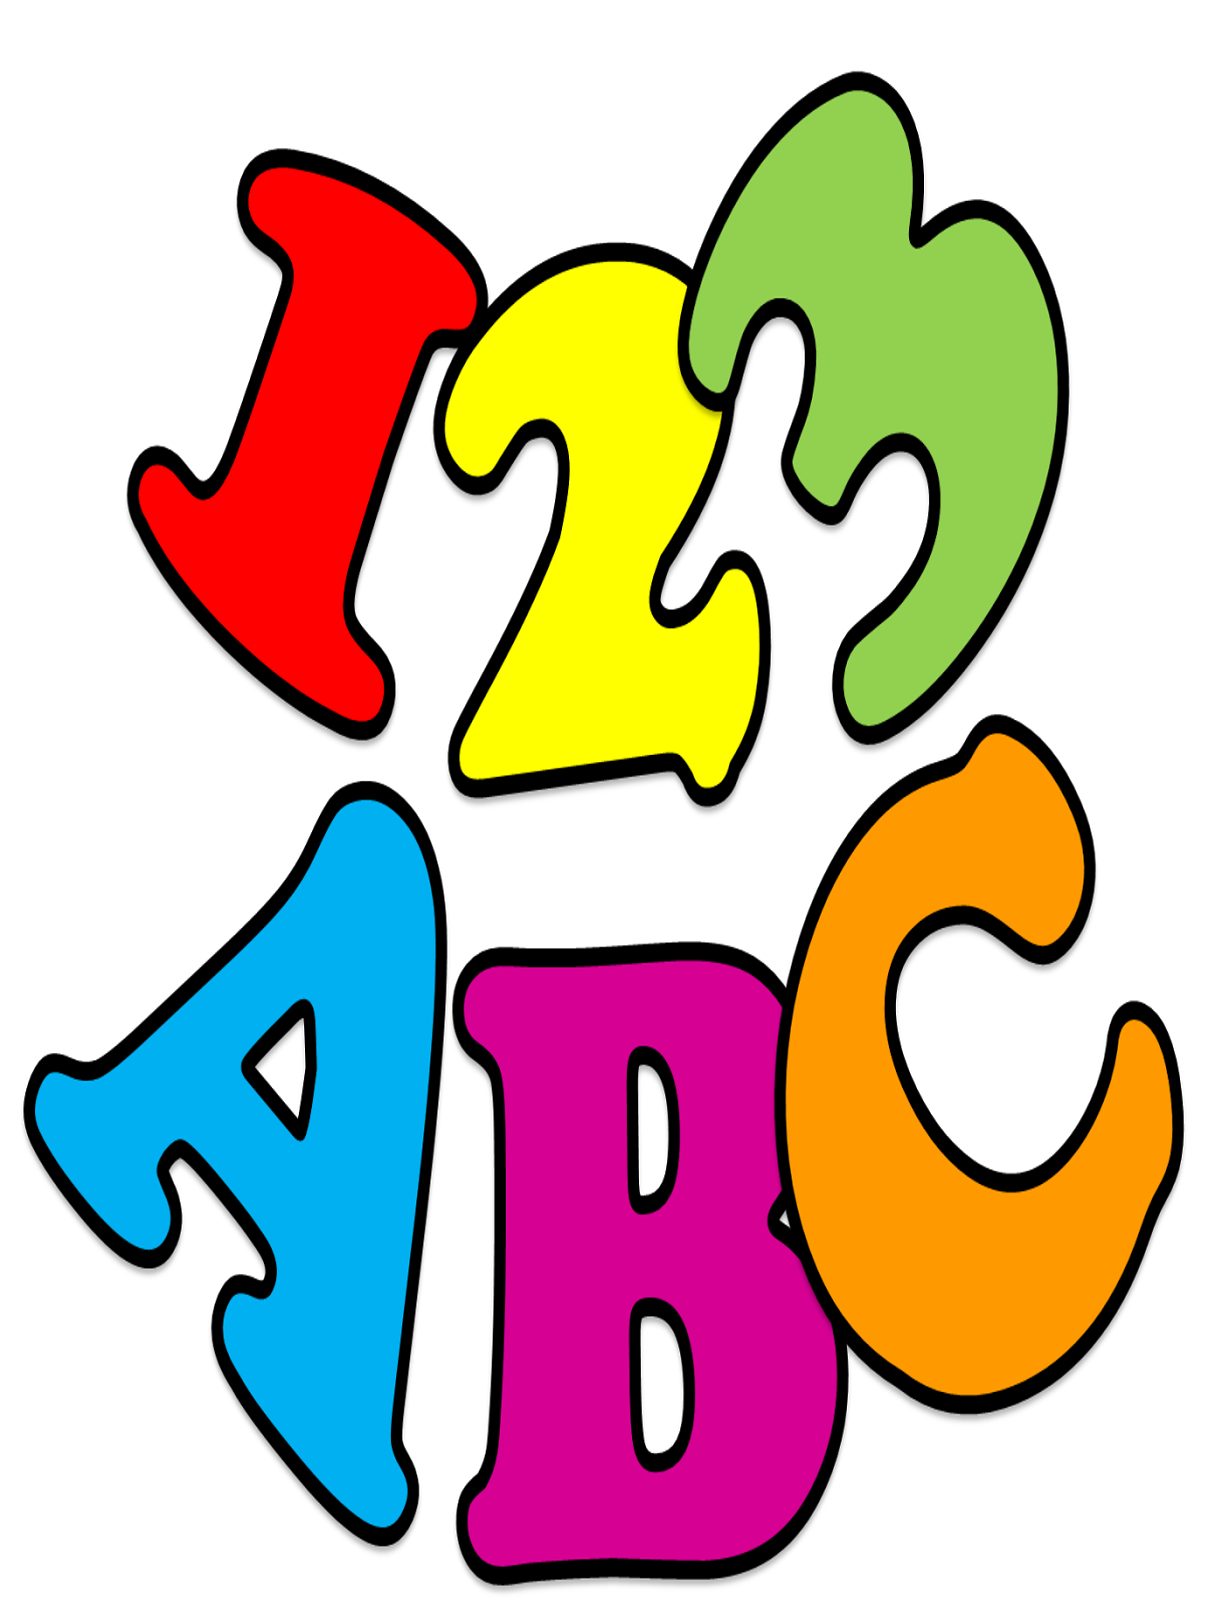 Babysitting clipart abc123. Abc cliparts making the